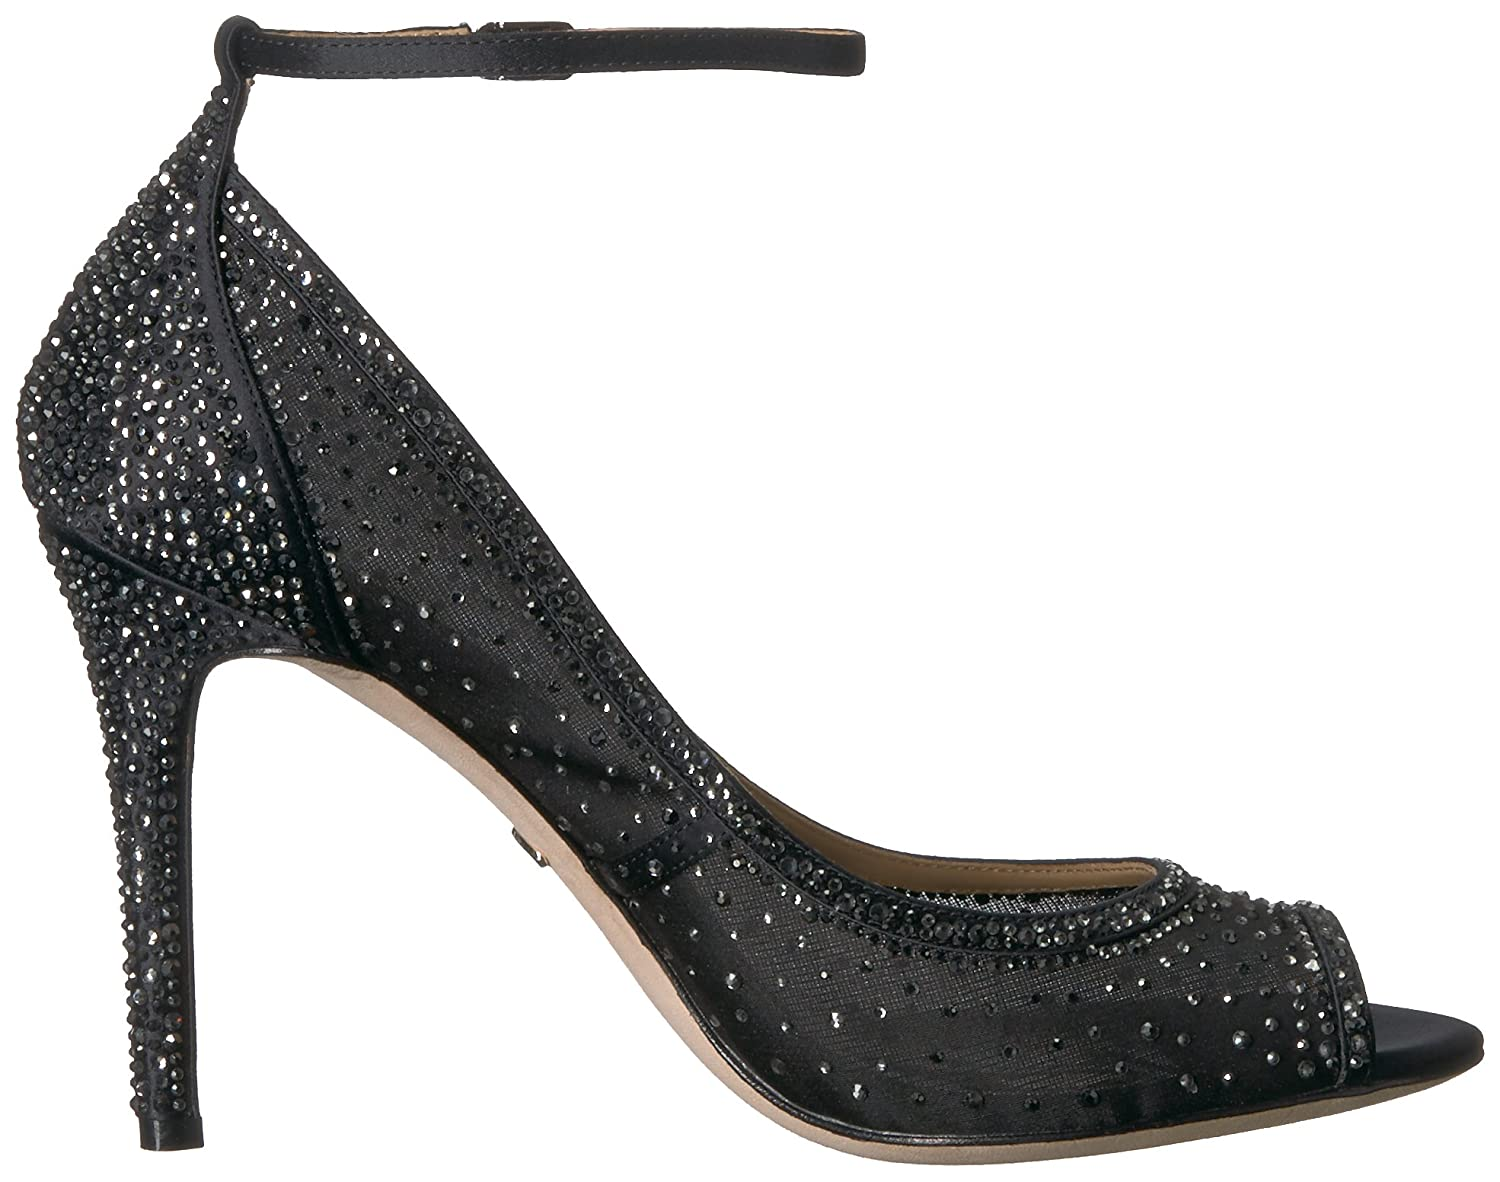 Badgley Mischka Women's 6.5 Weylin Pump B073CWWPP7 6.5 Women's B(M) US|Black baa829